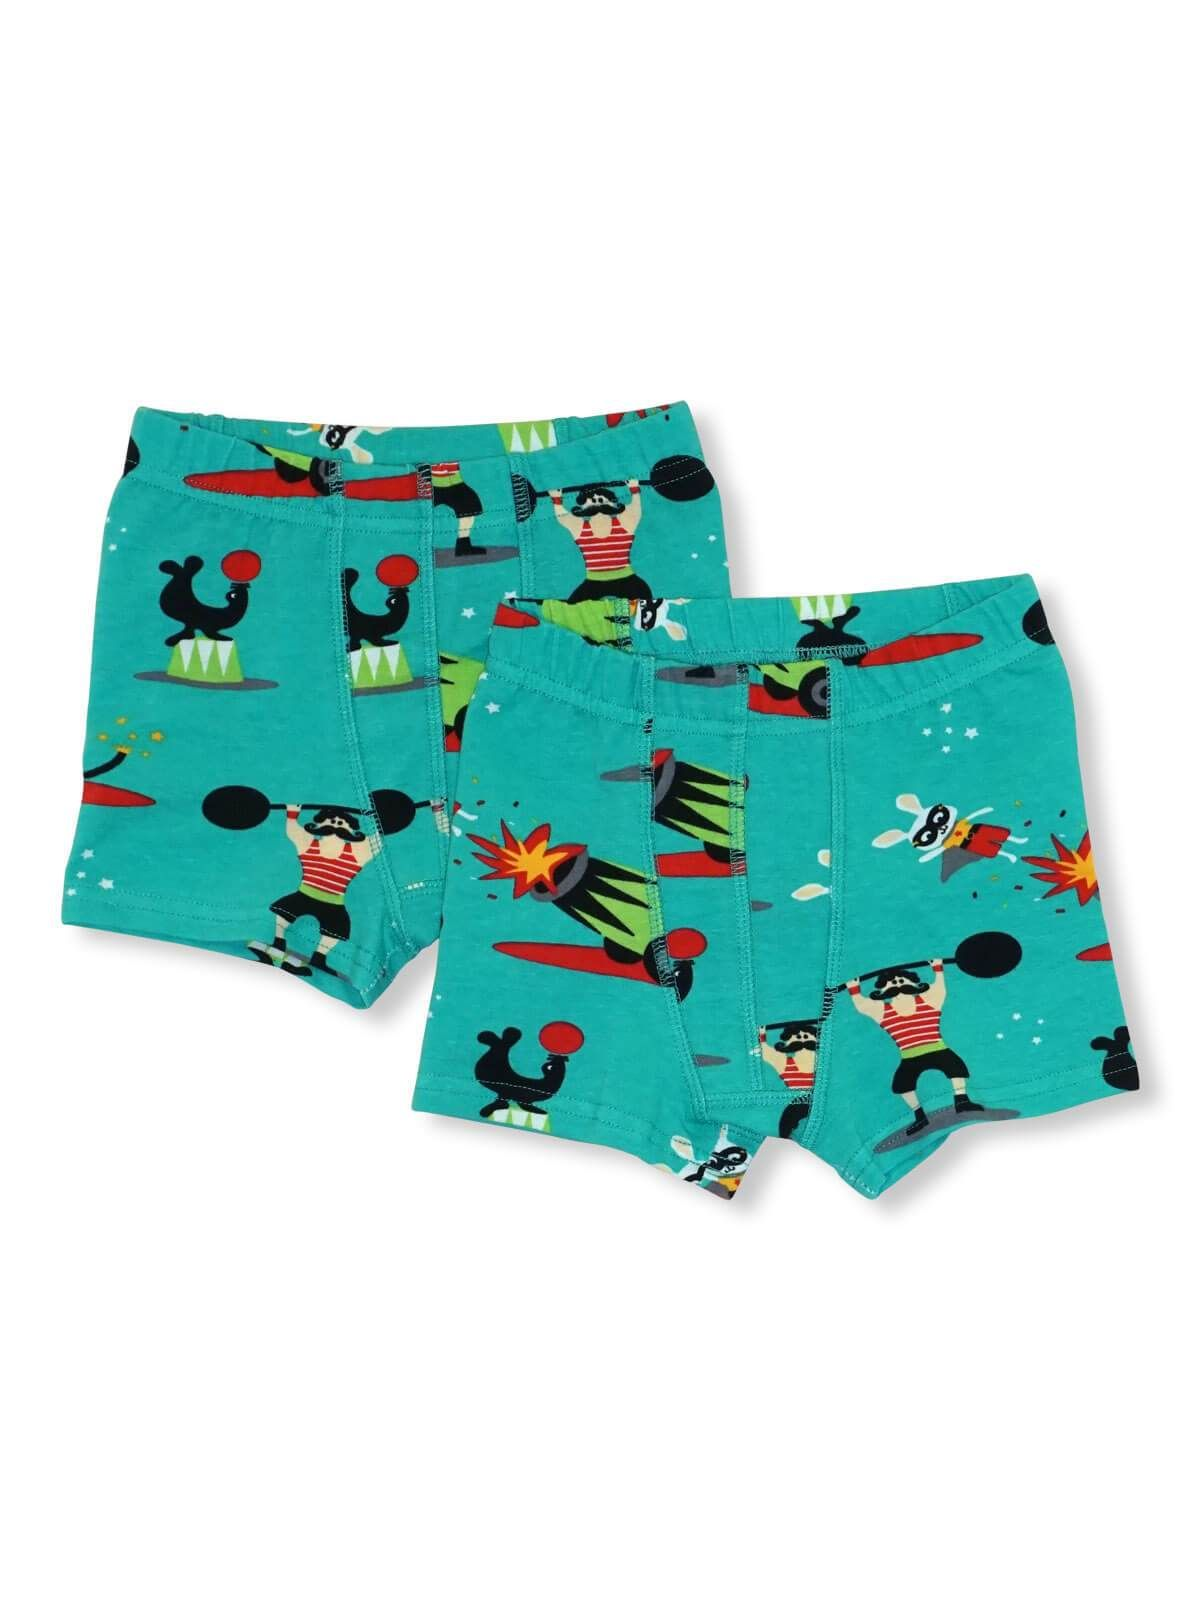 dc02c75caf7baa Super Rabbit Boxers Underwear from Sweden's JNY Colourful Kids. Ethically  made in the EU. Available in Canada and the US at Modern Rascals.